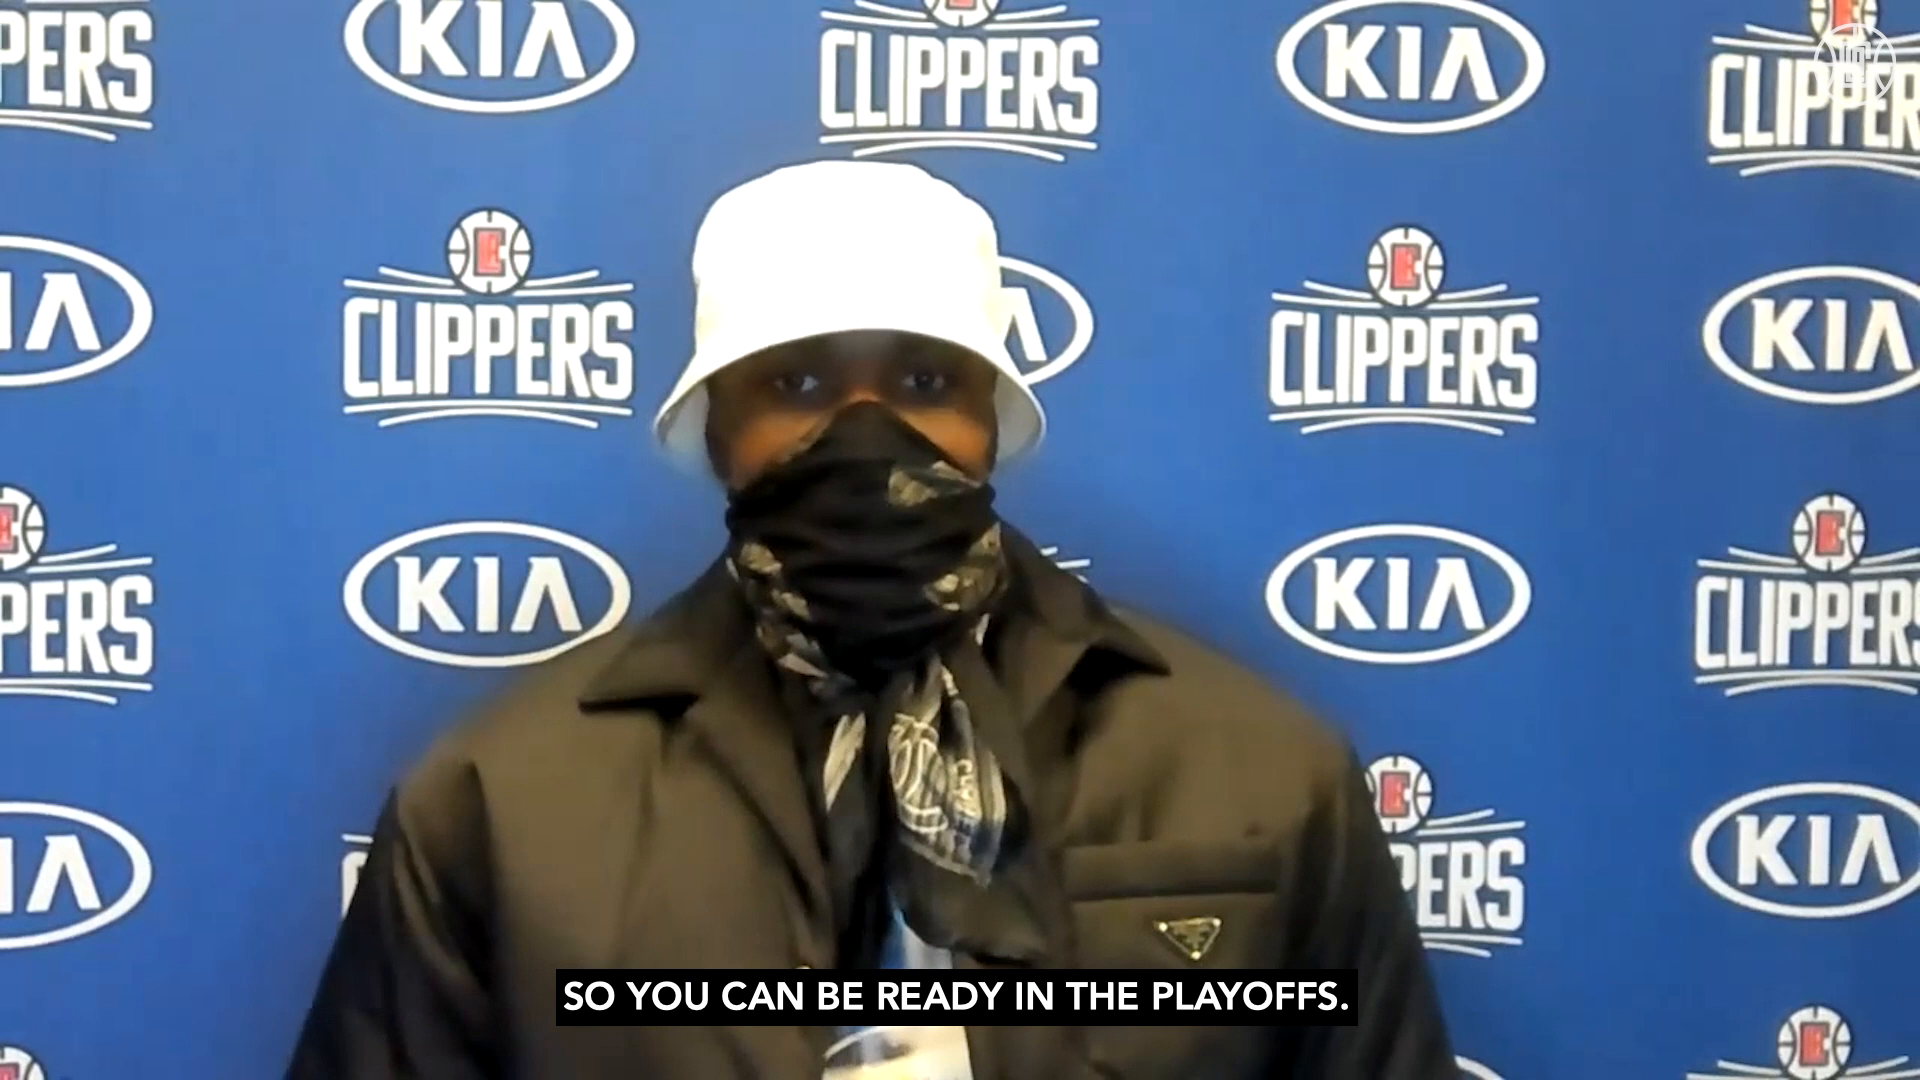 Ibaka on the Second Half of the Season | Clippers vs Warriors (3.11.21)